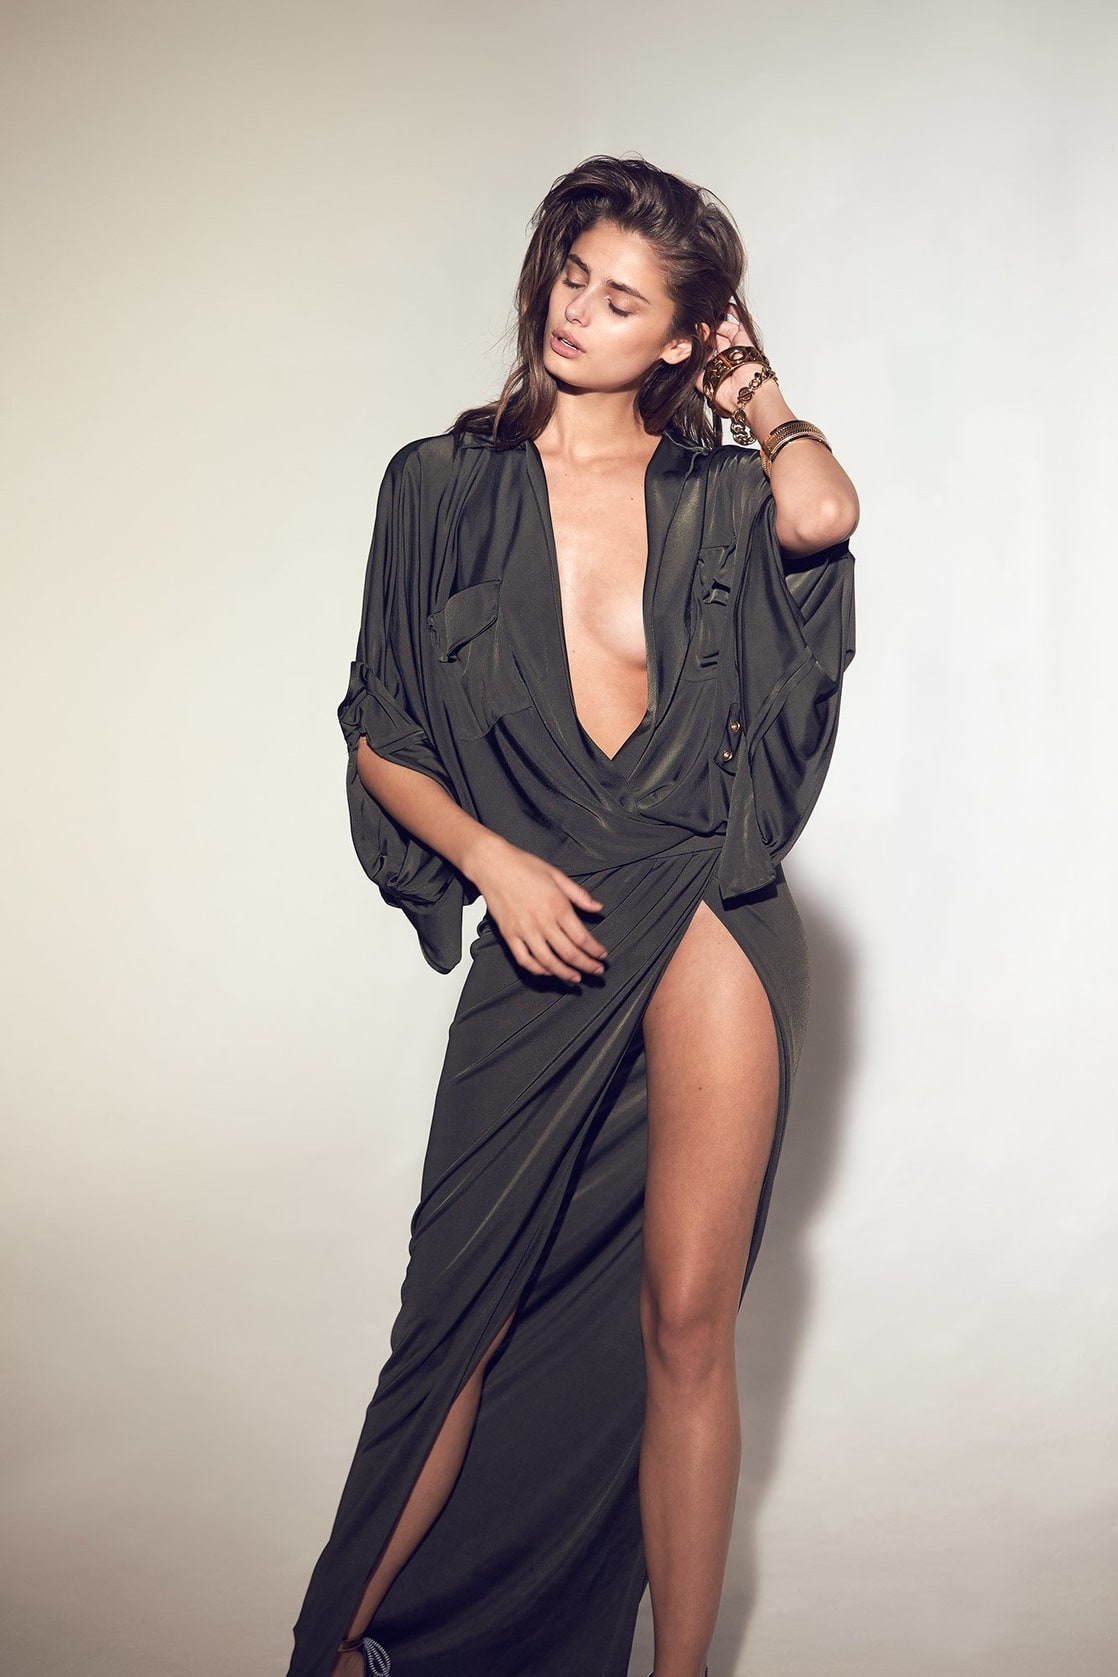 taylor marie hill latest - photo #40